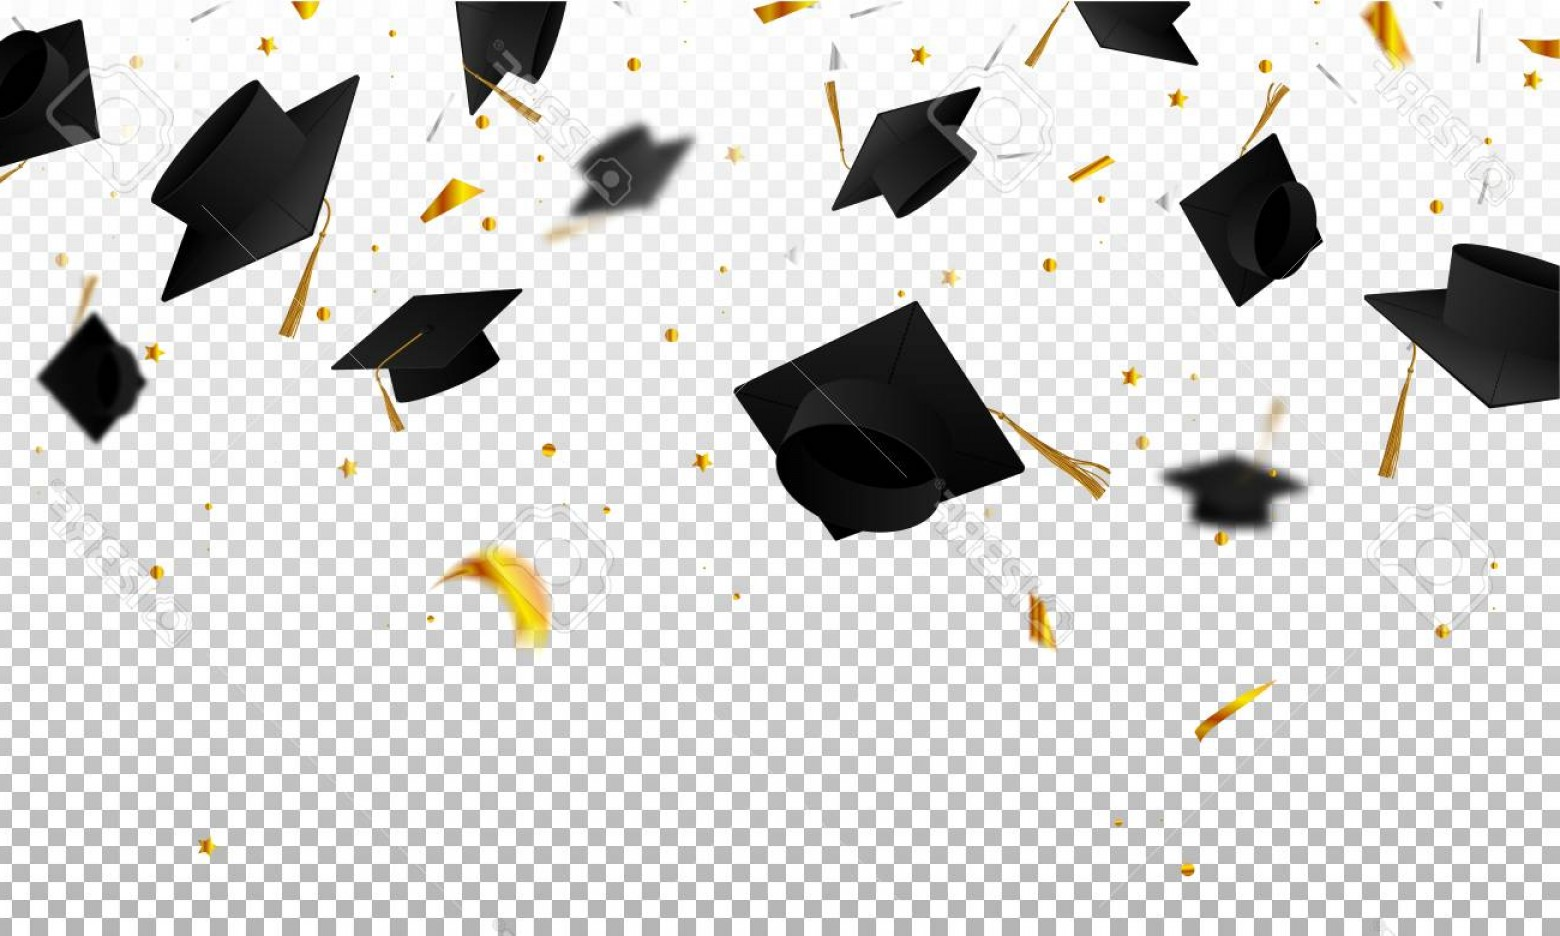 Photostock Vector Graduate Caps And Confetti On A Transparent.